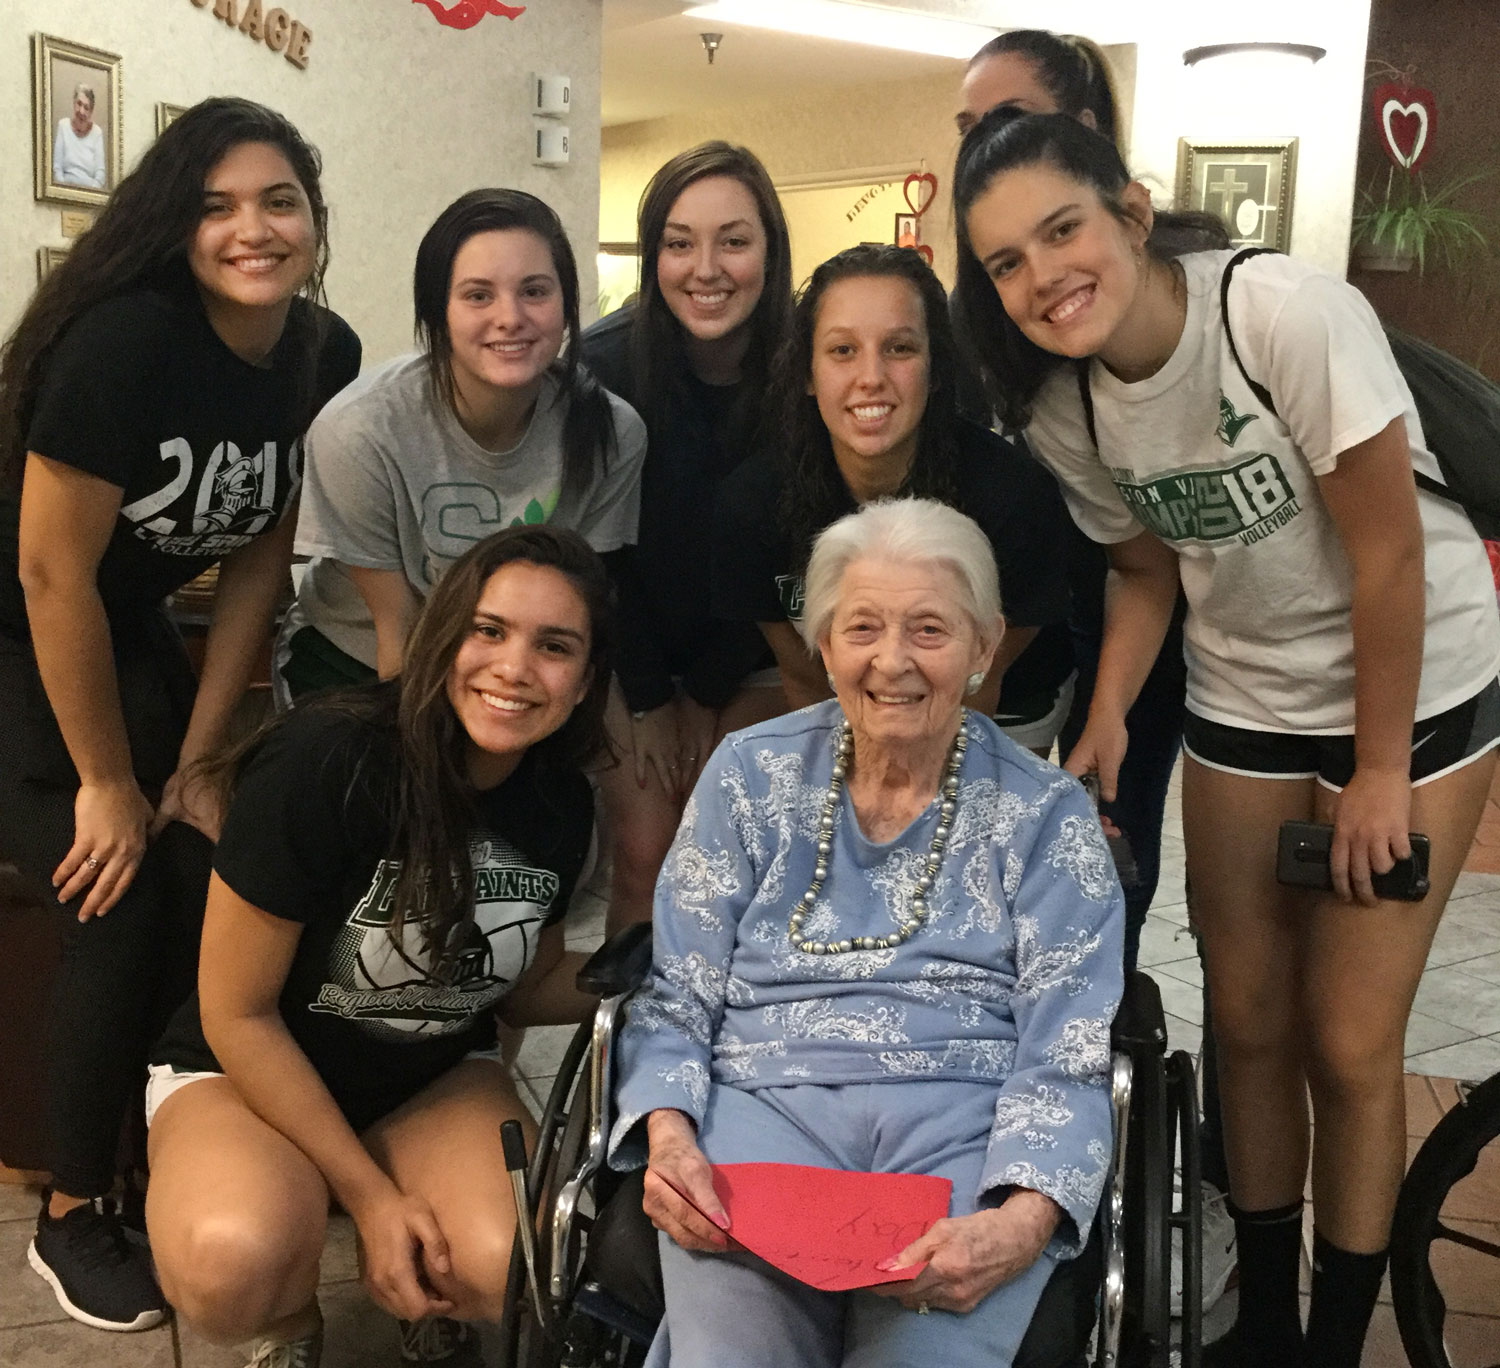 The+Lady+Saints+volleyball+team+spent+the+afternoon+visiting+area+nursing+home+residents+and+delivering+homemade+valentine%27s+cards.+Students+from+the+college+visited+three+homes+on+Feb.+14.